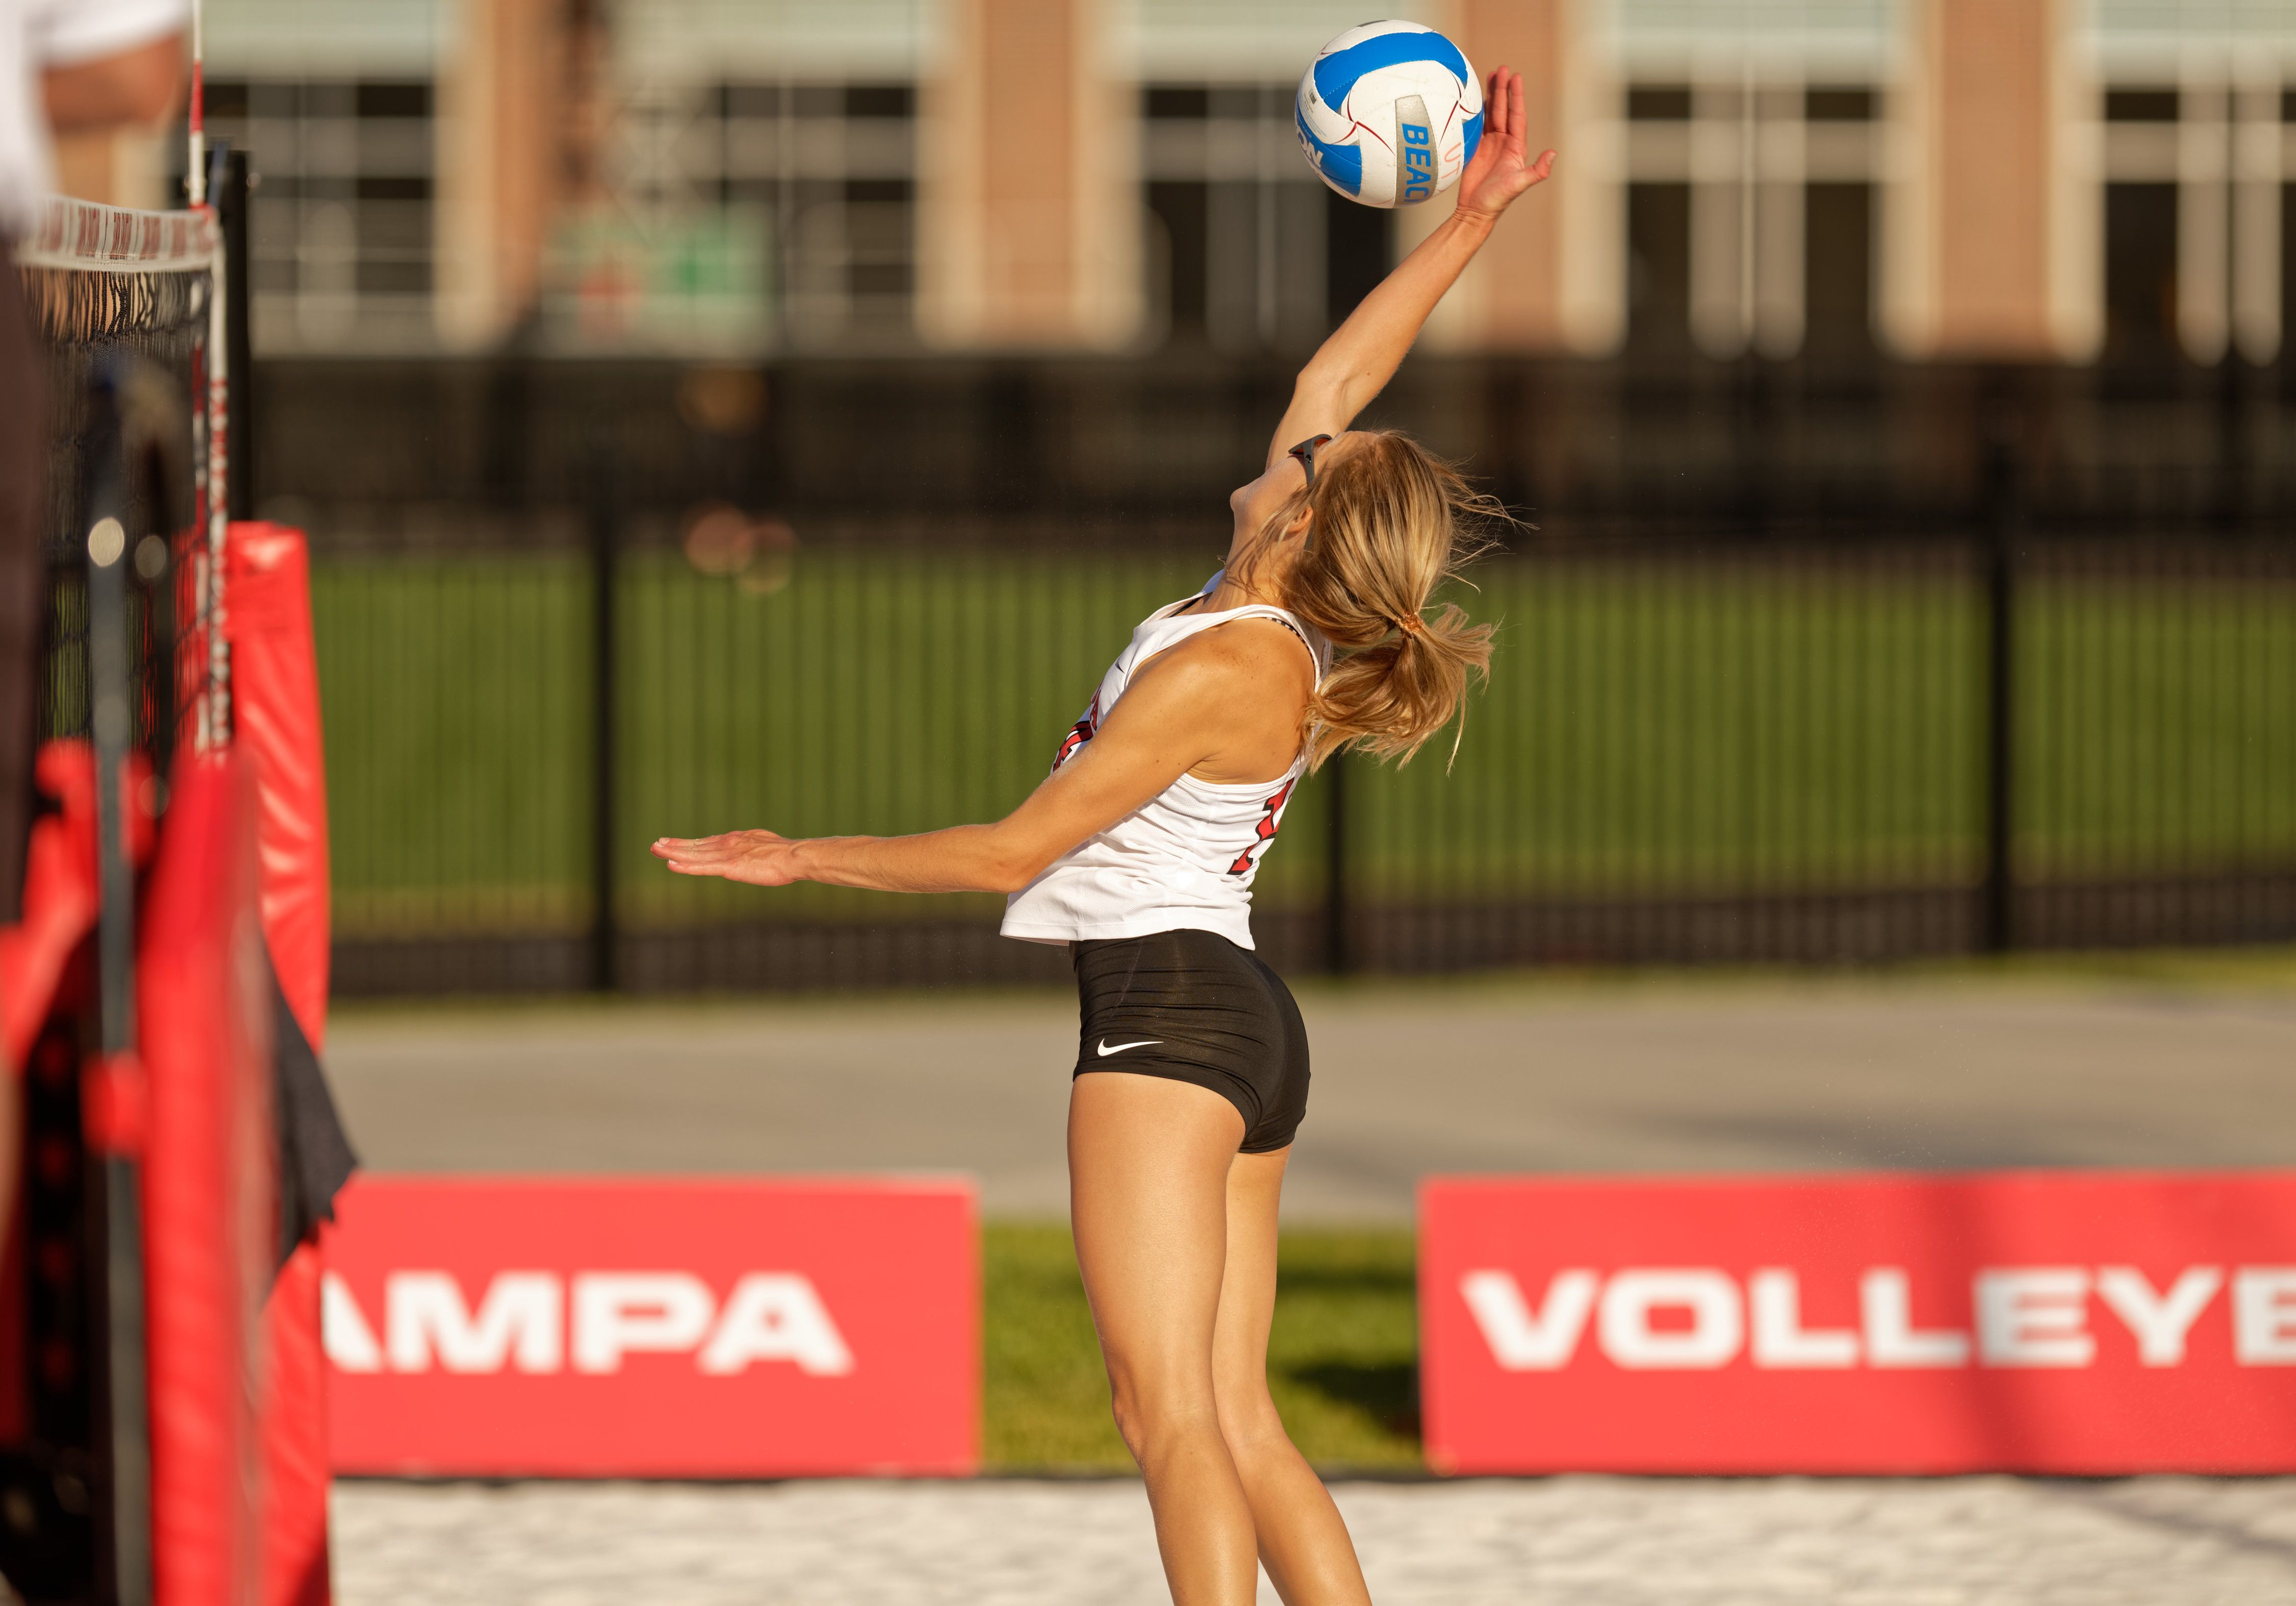 University Of Tampa Division I Beach Volleyball University Of Tampa Beach Volleyball Athlete